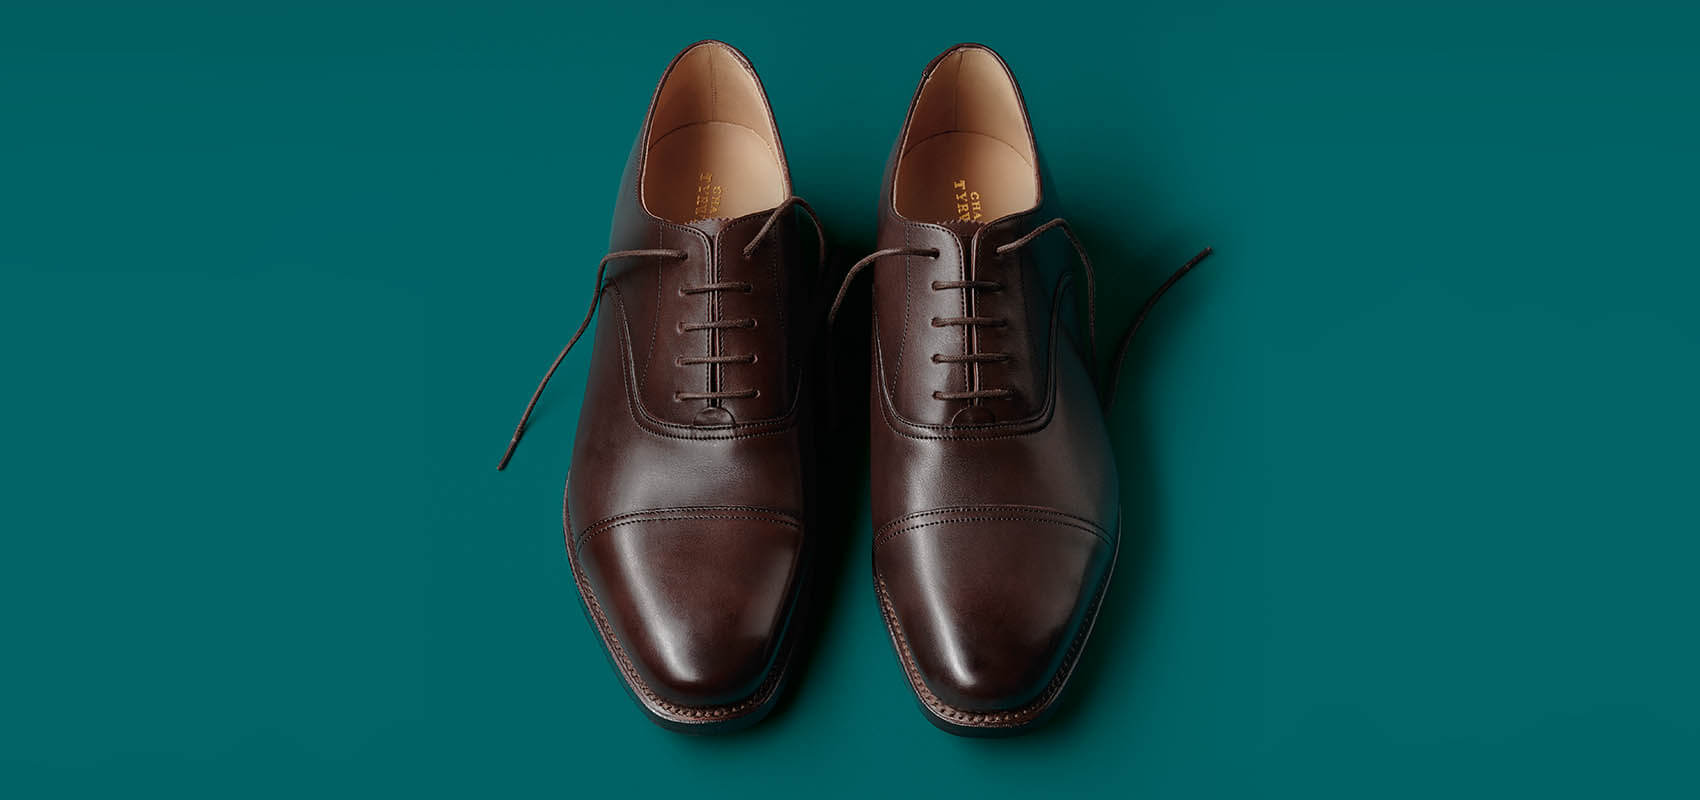 Charles Tyrwhitt Rubber soled shoes